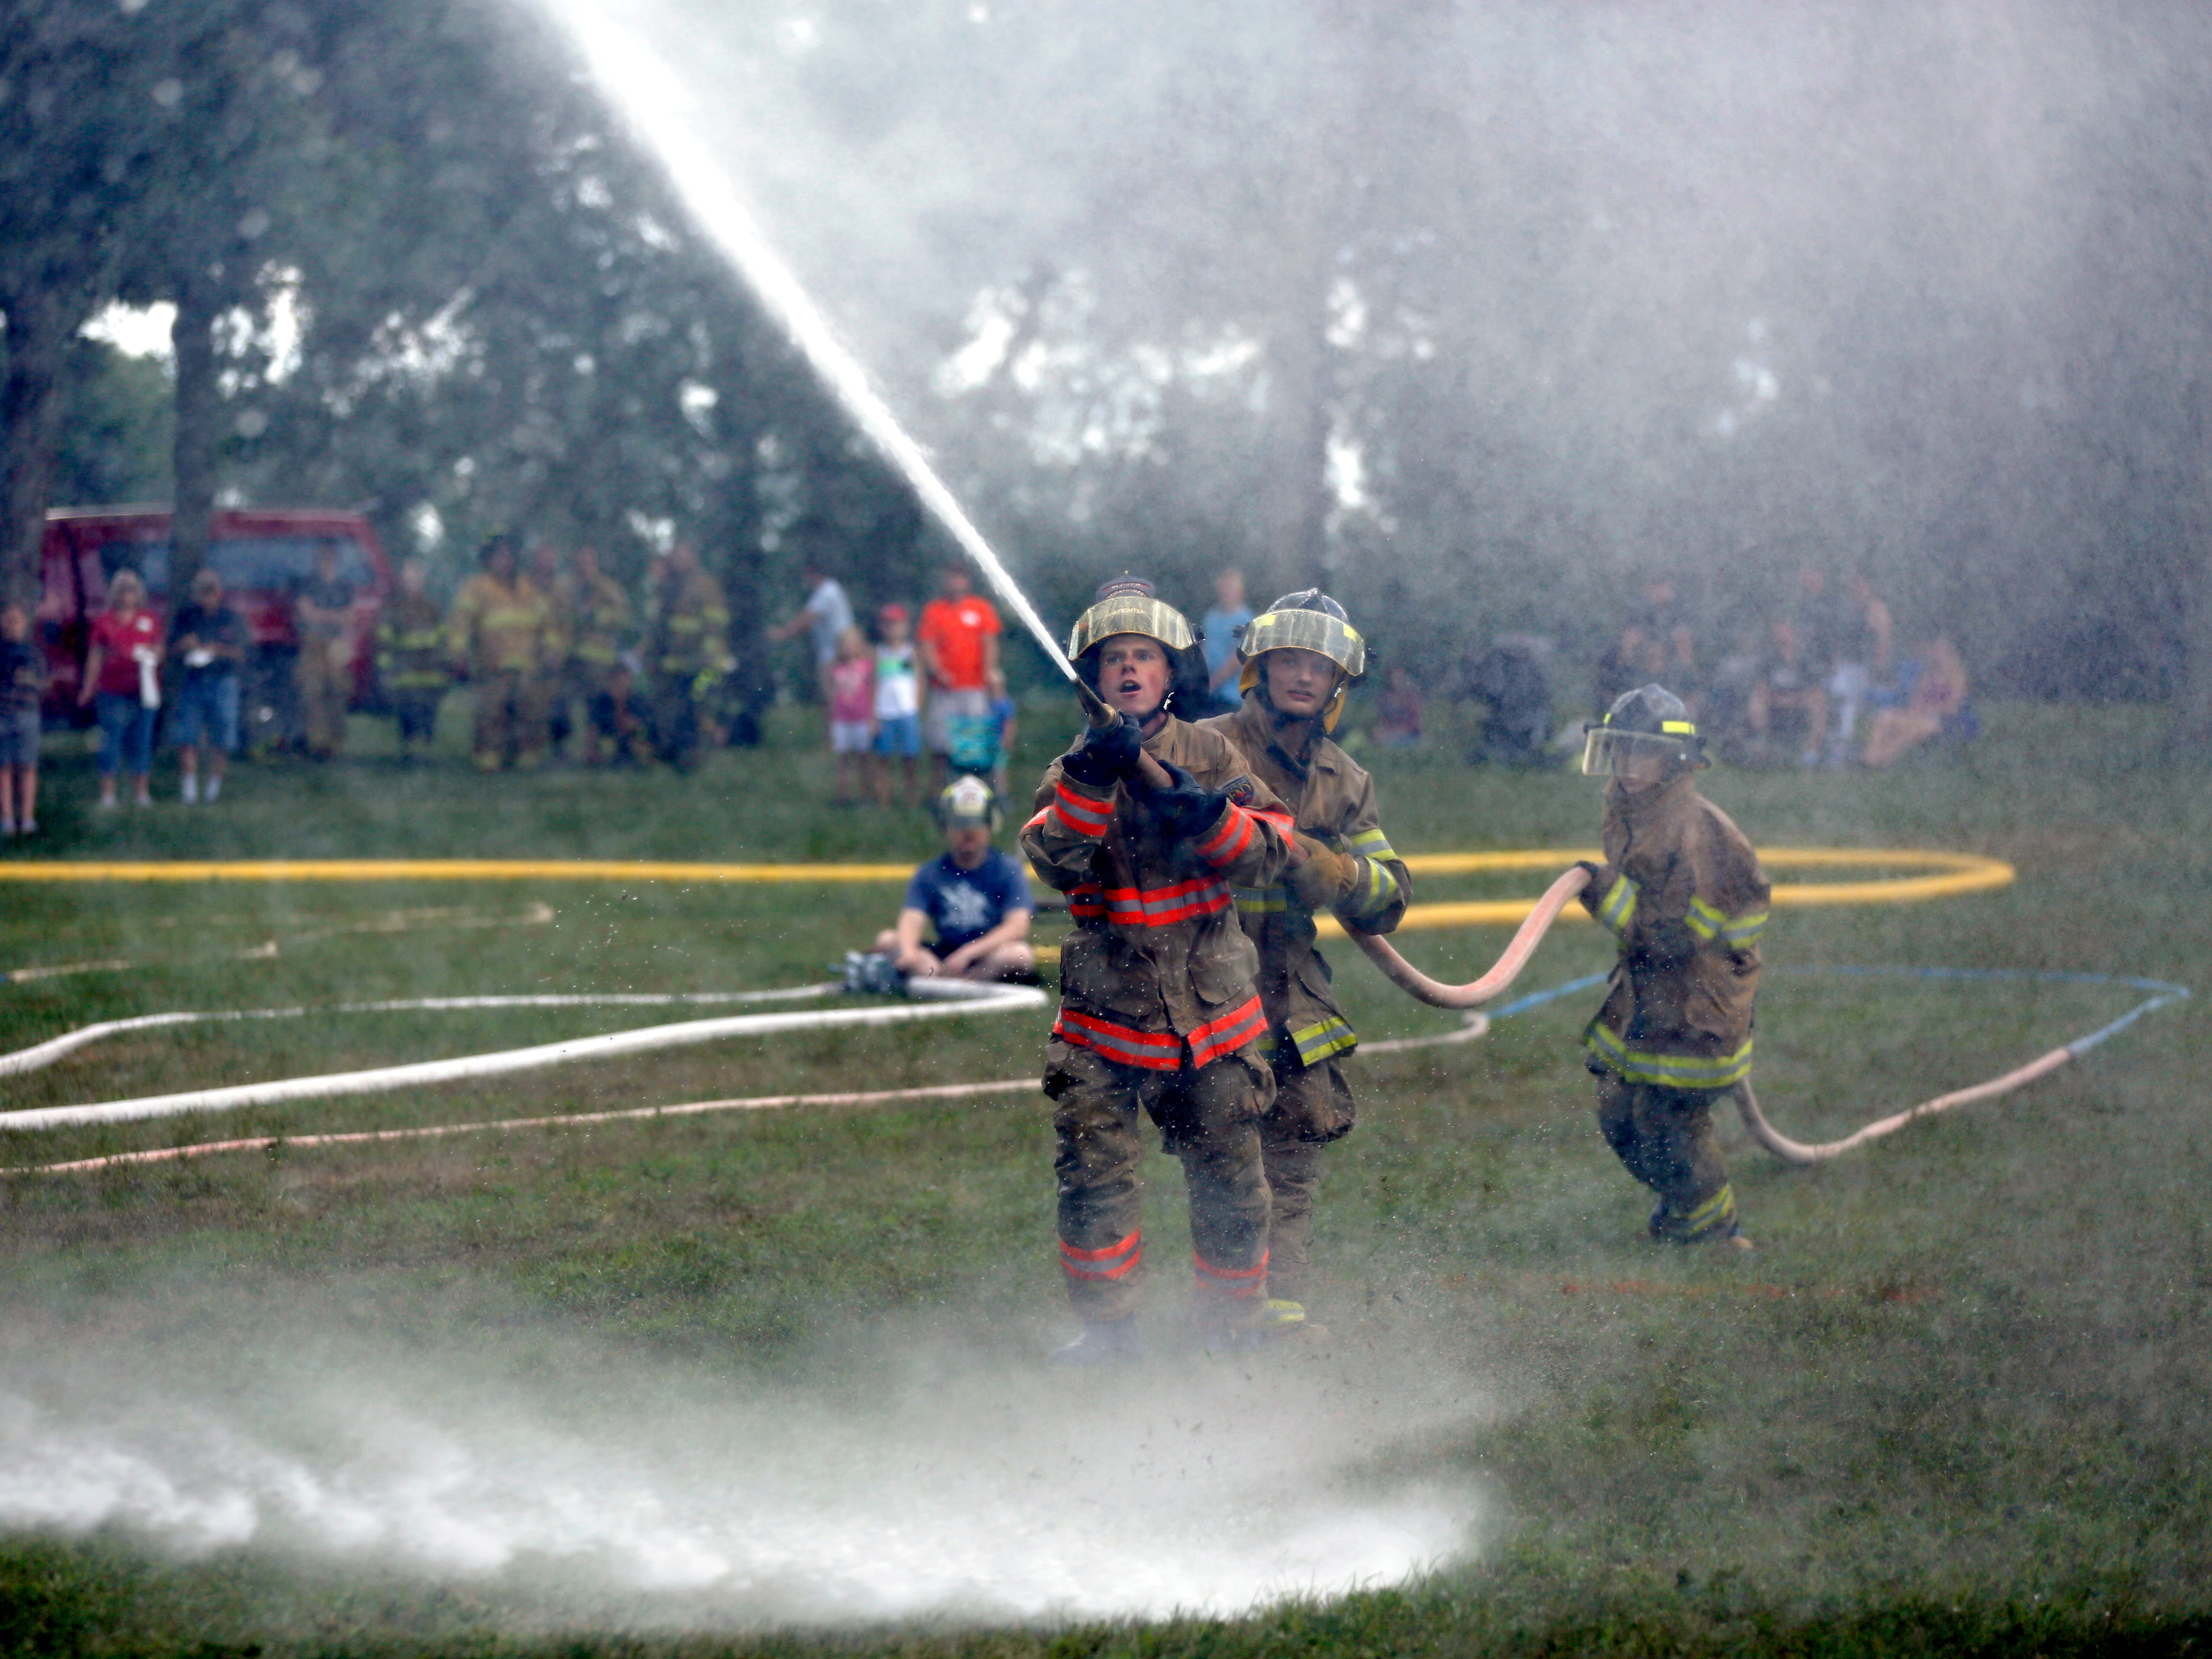 Firefighters participate in the water fights during Celebrate Plover at Lake Pacawa Park in Plover, Wis., July 28, 2018.